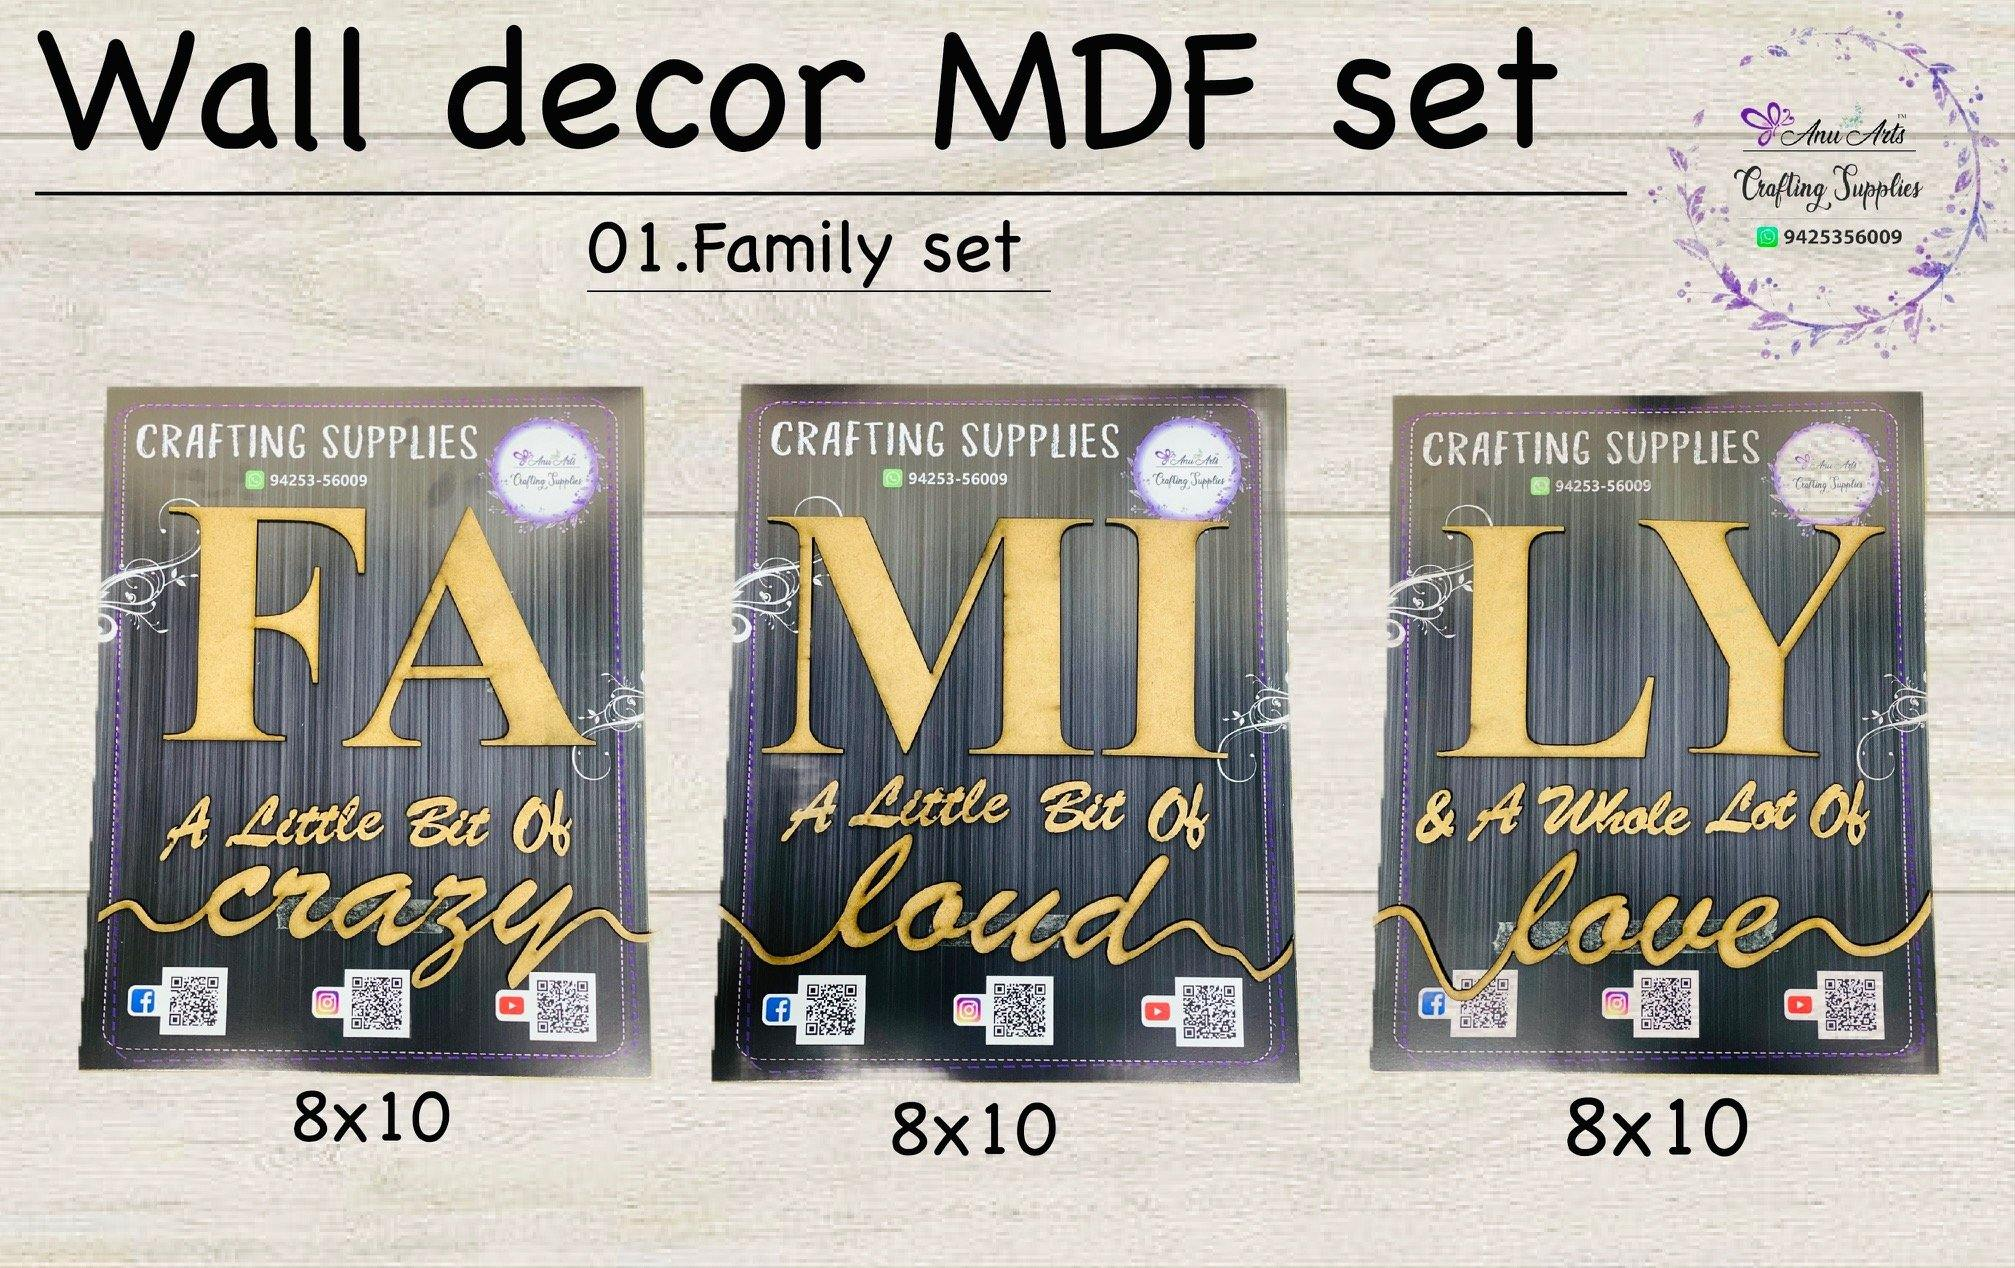 Wall decor MDF set (family set)